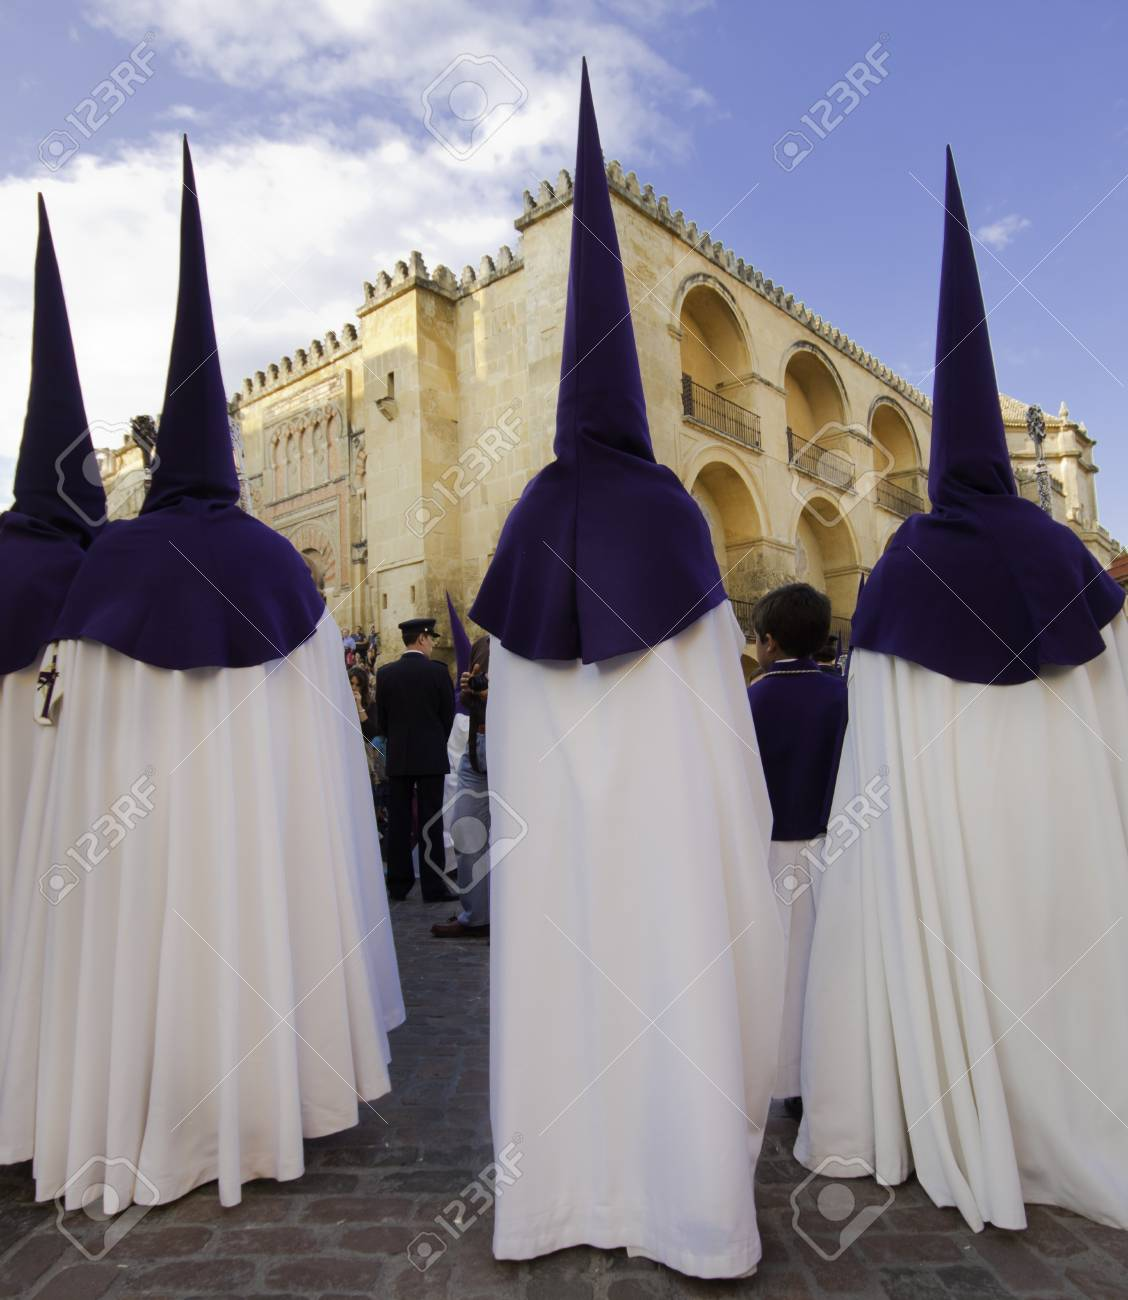 The extraordinarily  Christianprocession of the Semana Santa  Holy Week  in Andalusia, Spain  Stock Photo - 12943965